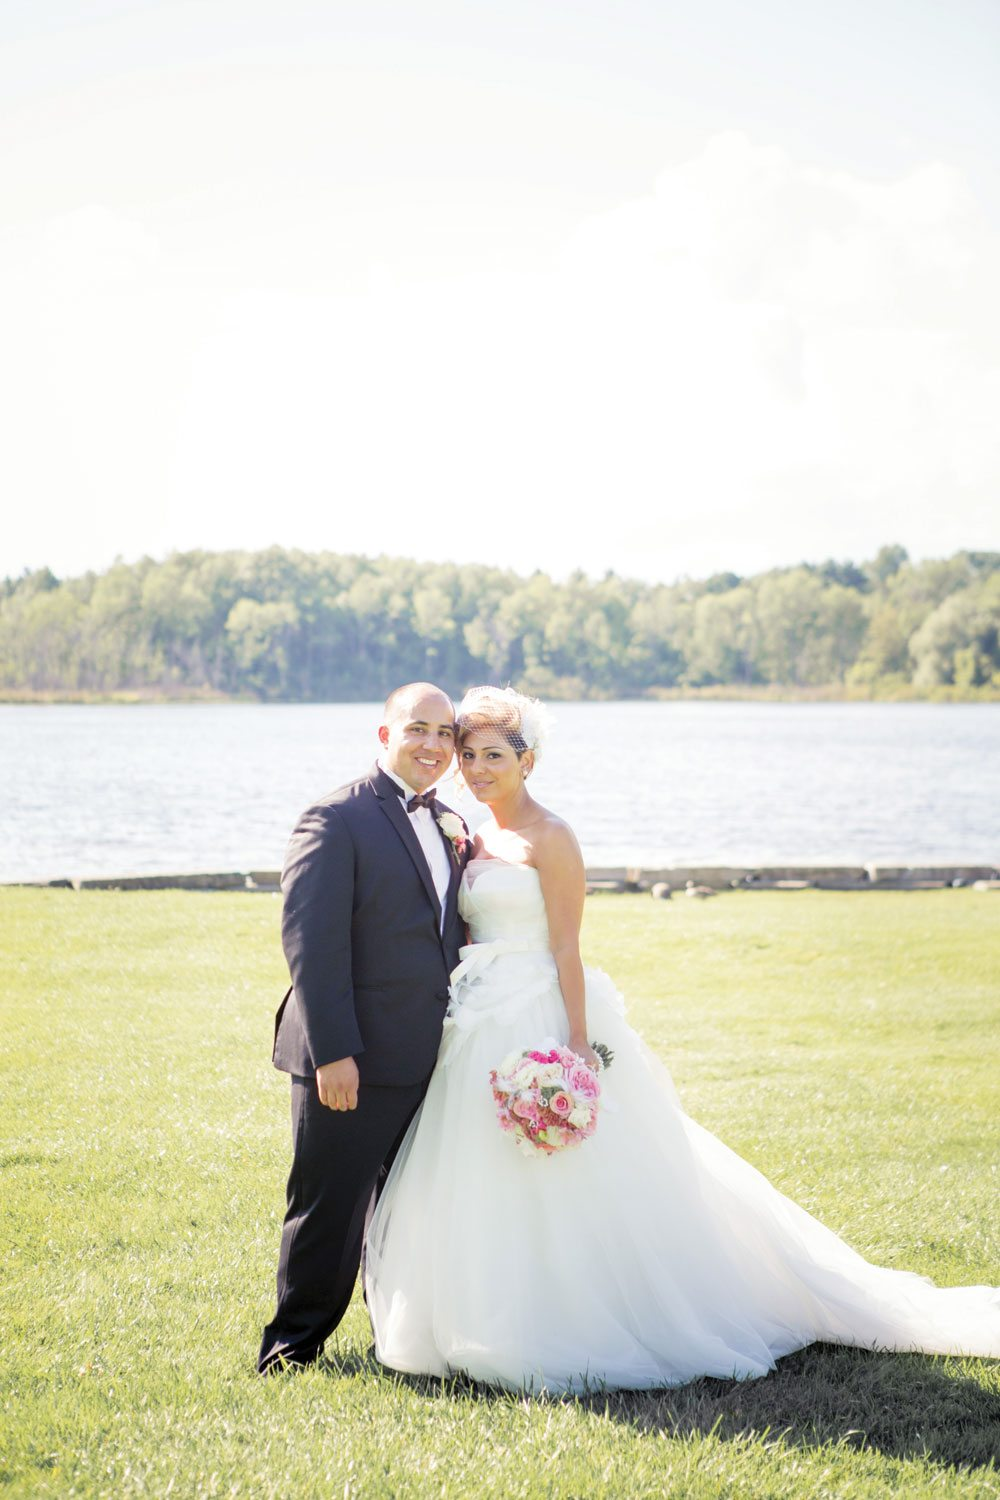 A Black and Pink Hollywood Glamour Wedding in Caledon, Ontario